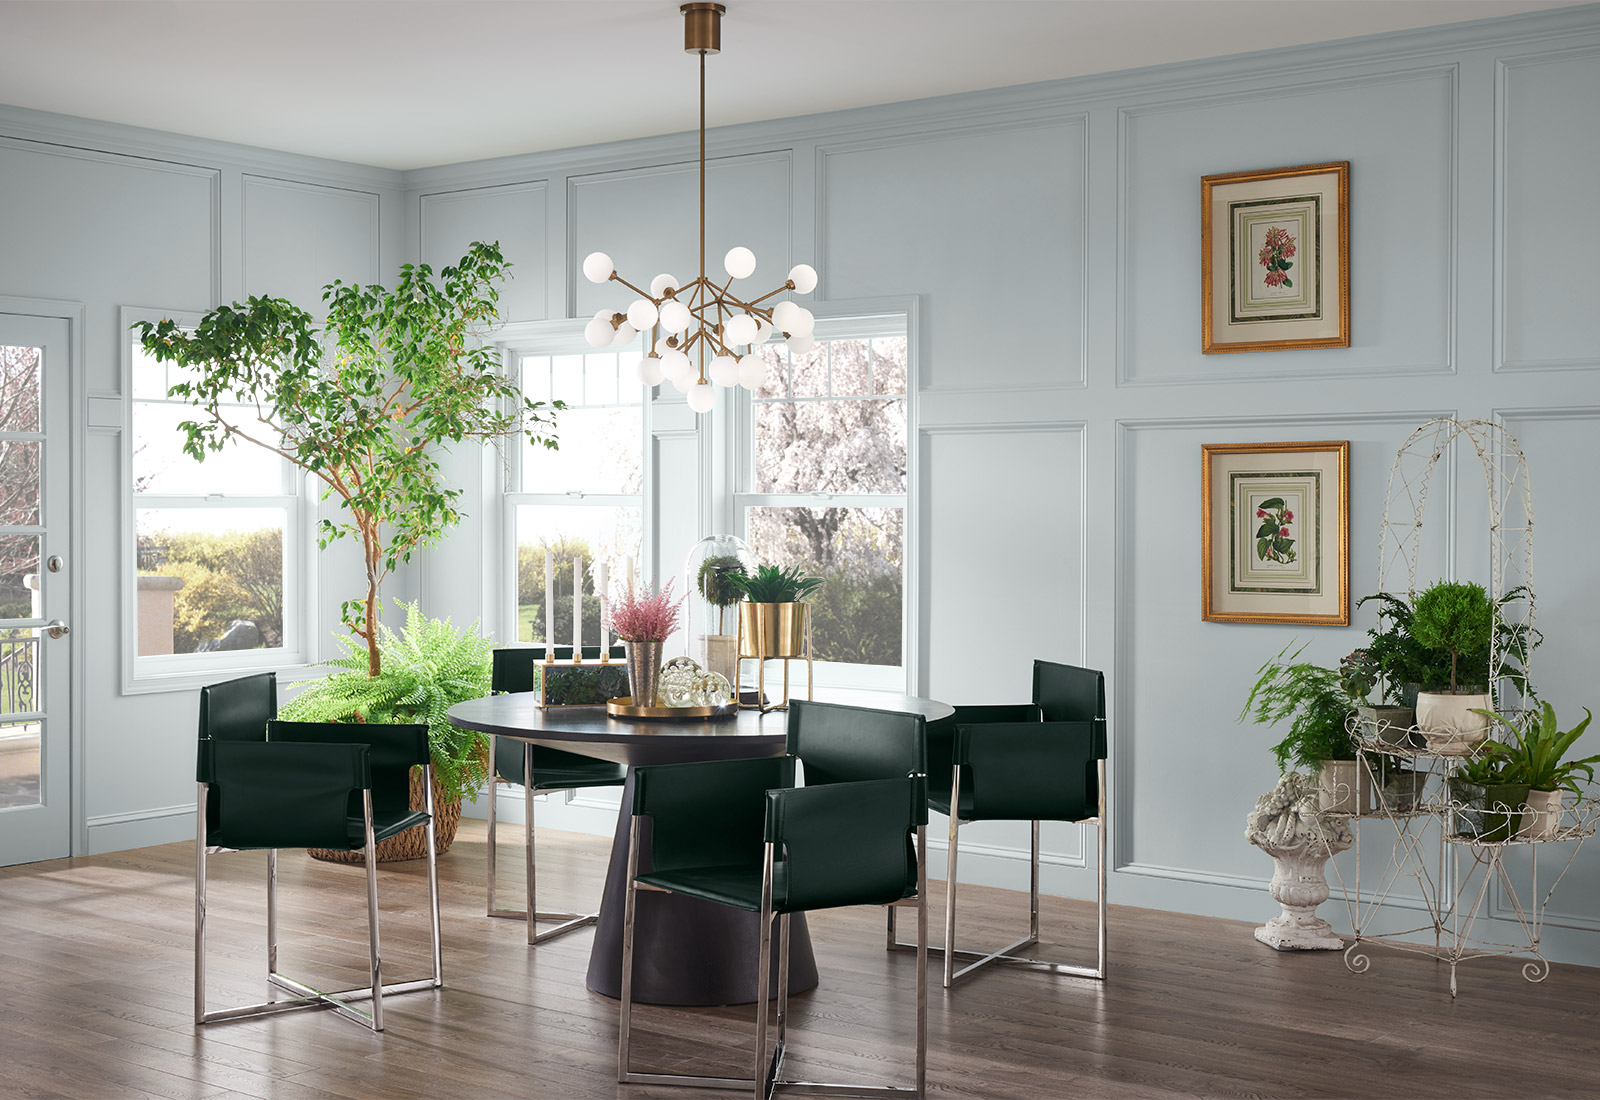 Sherwin-Williams Misty wall color in dining area